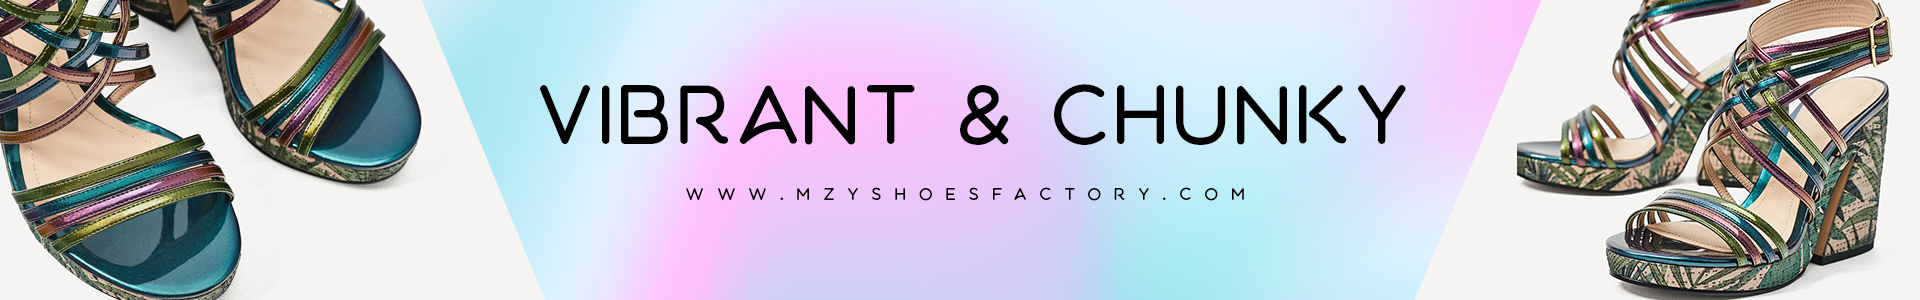 MZY Shoe factory products